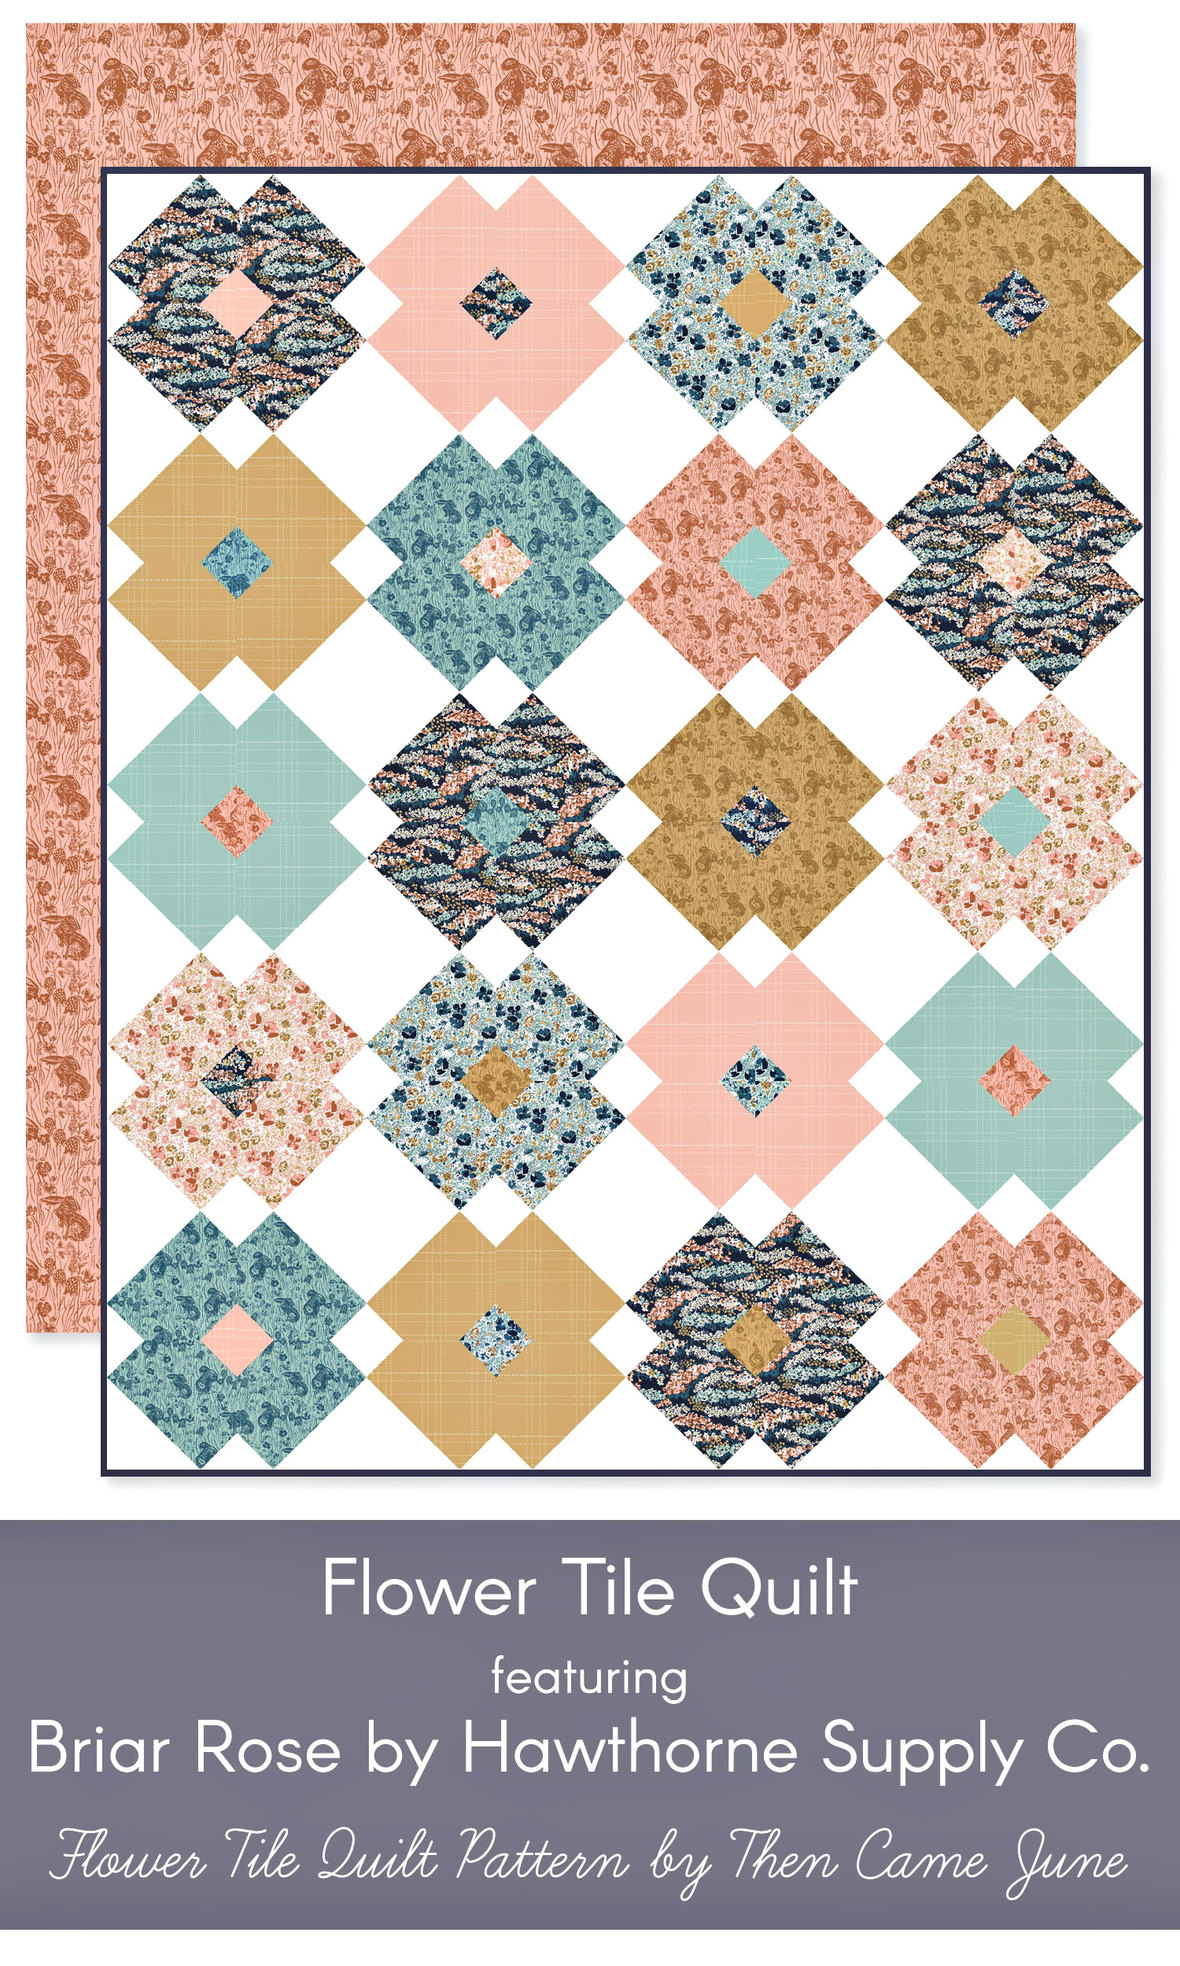 Then-Came-June-Flower-Tile-Quilt-in-Hawthorne-Supply-Co-Briar-Rose-Bunny-fabric